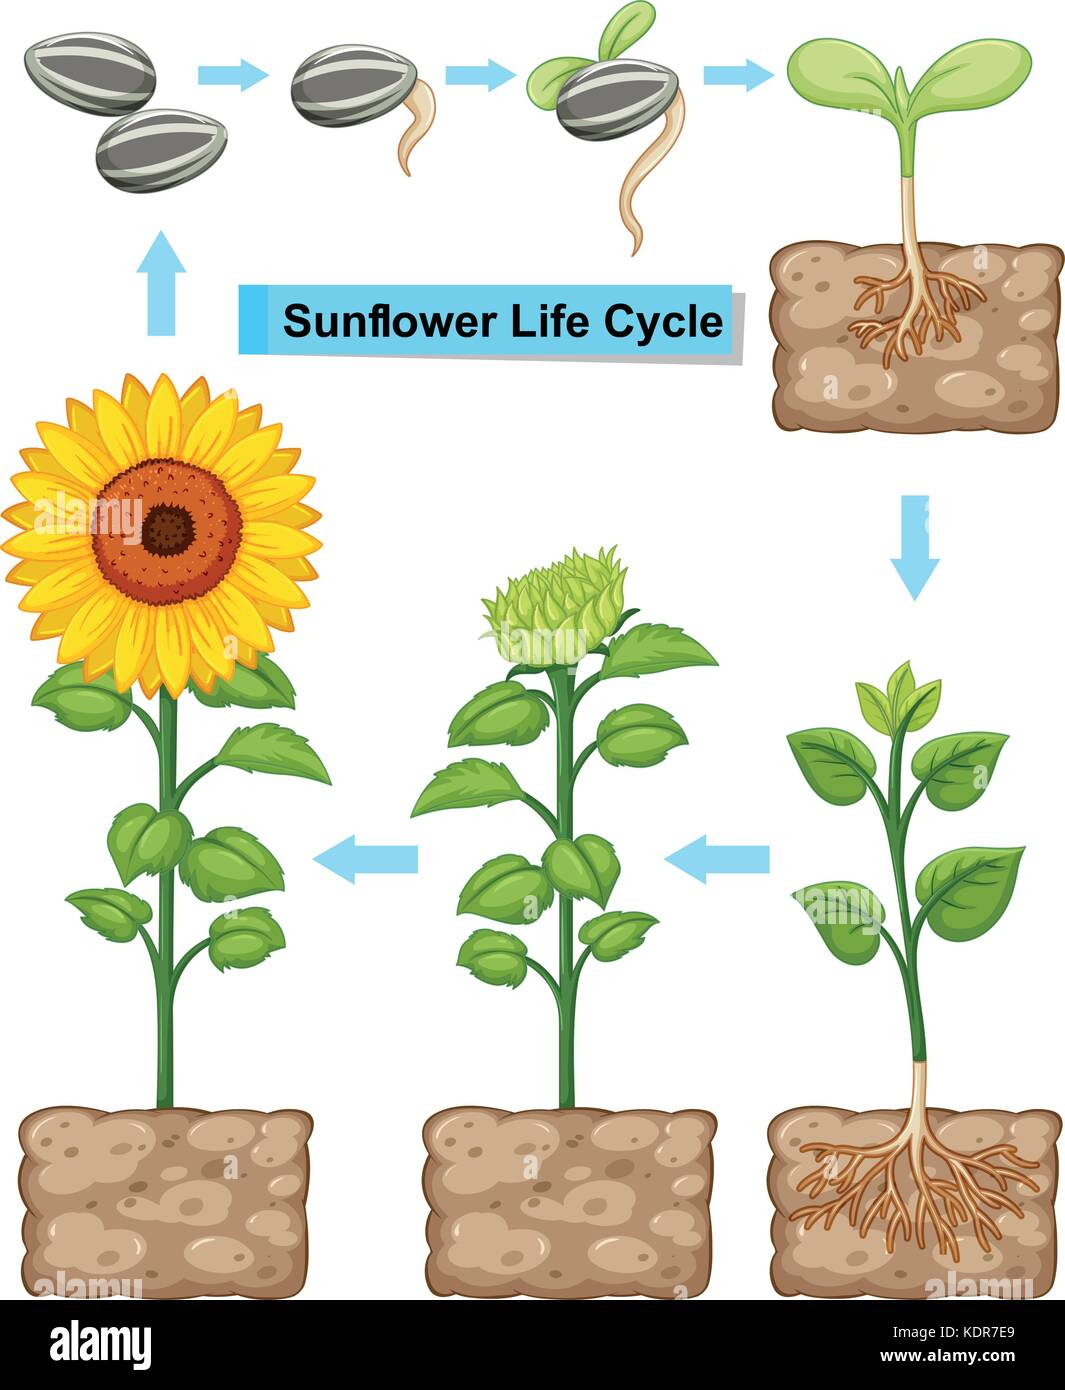 Flower Life Cycle Illustration Stock Photos & Flower Life Cycle ...